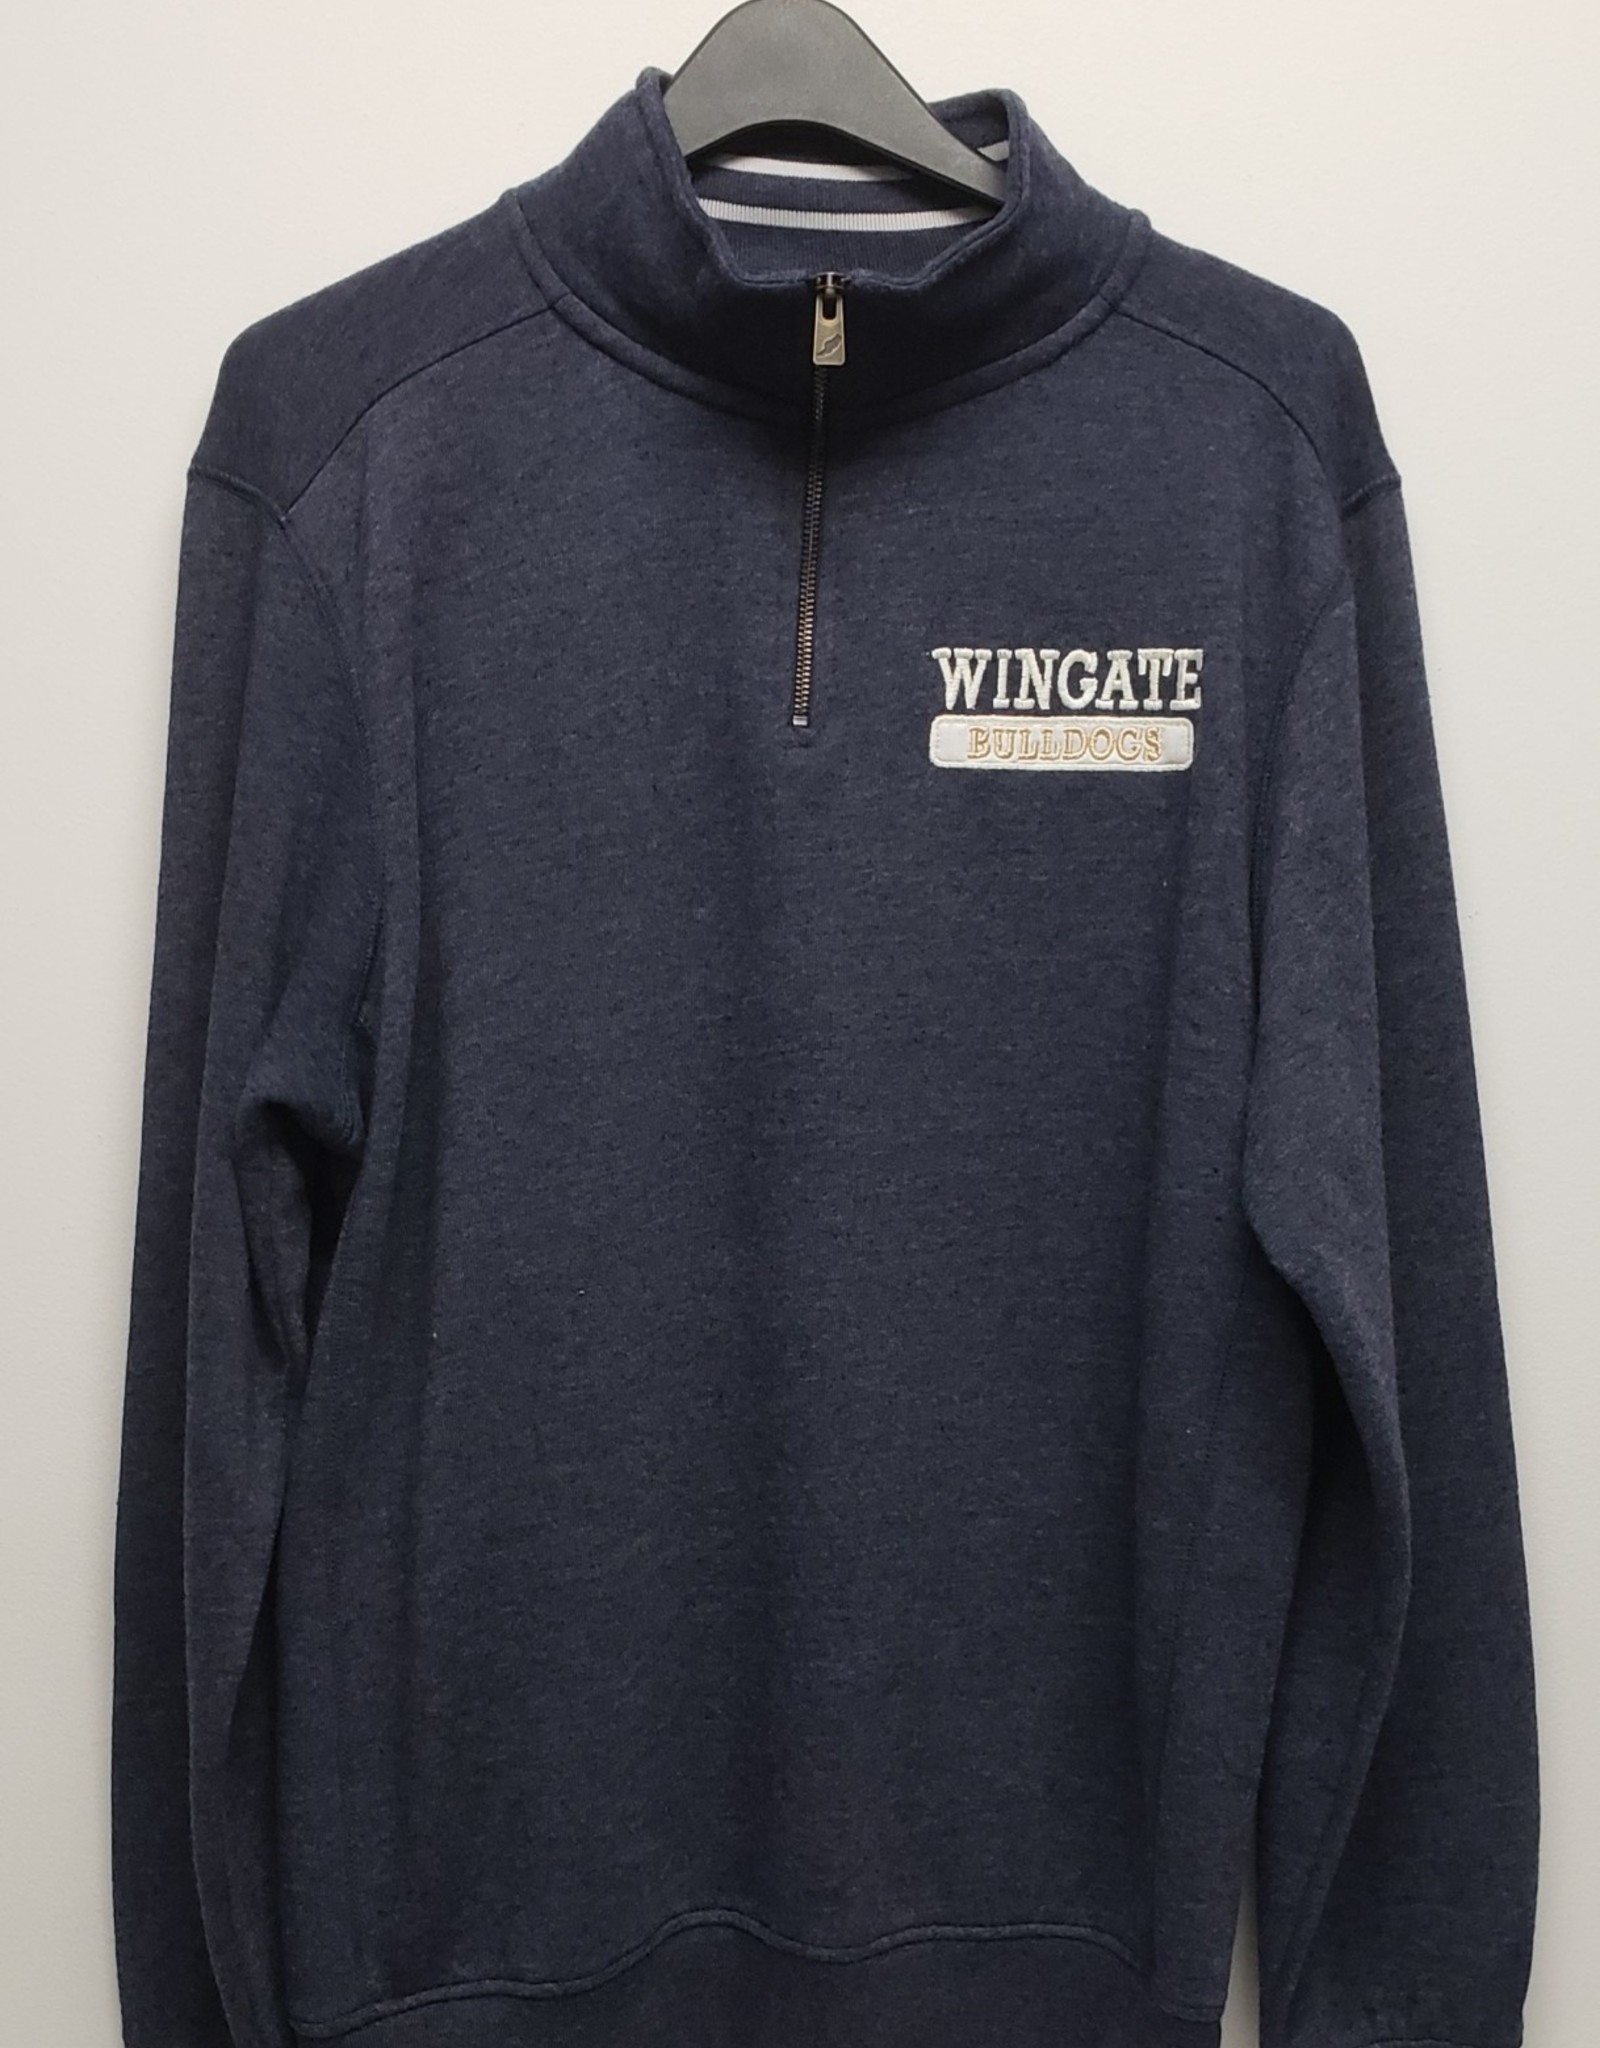 Navy Heather Triblend Collegiate 1/4 Zip